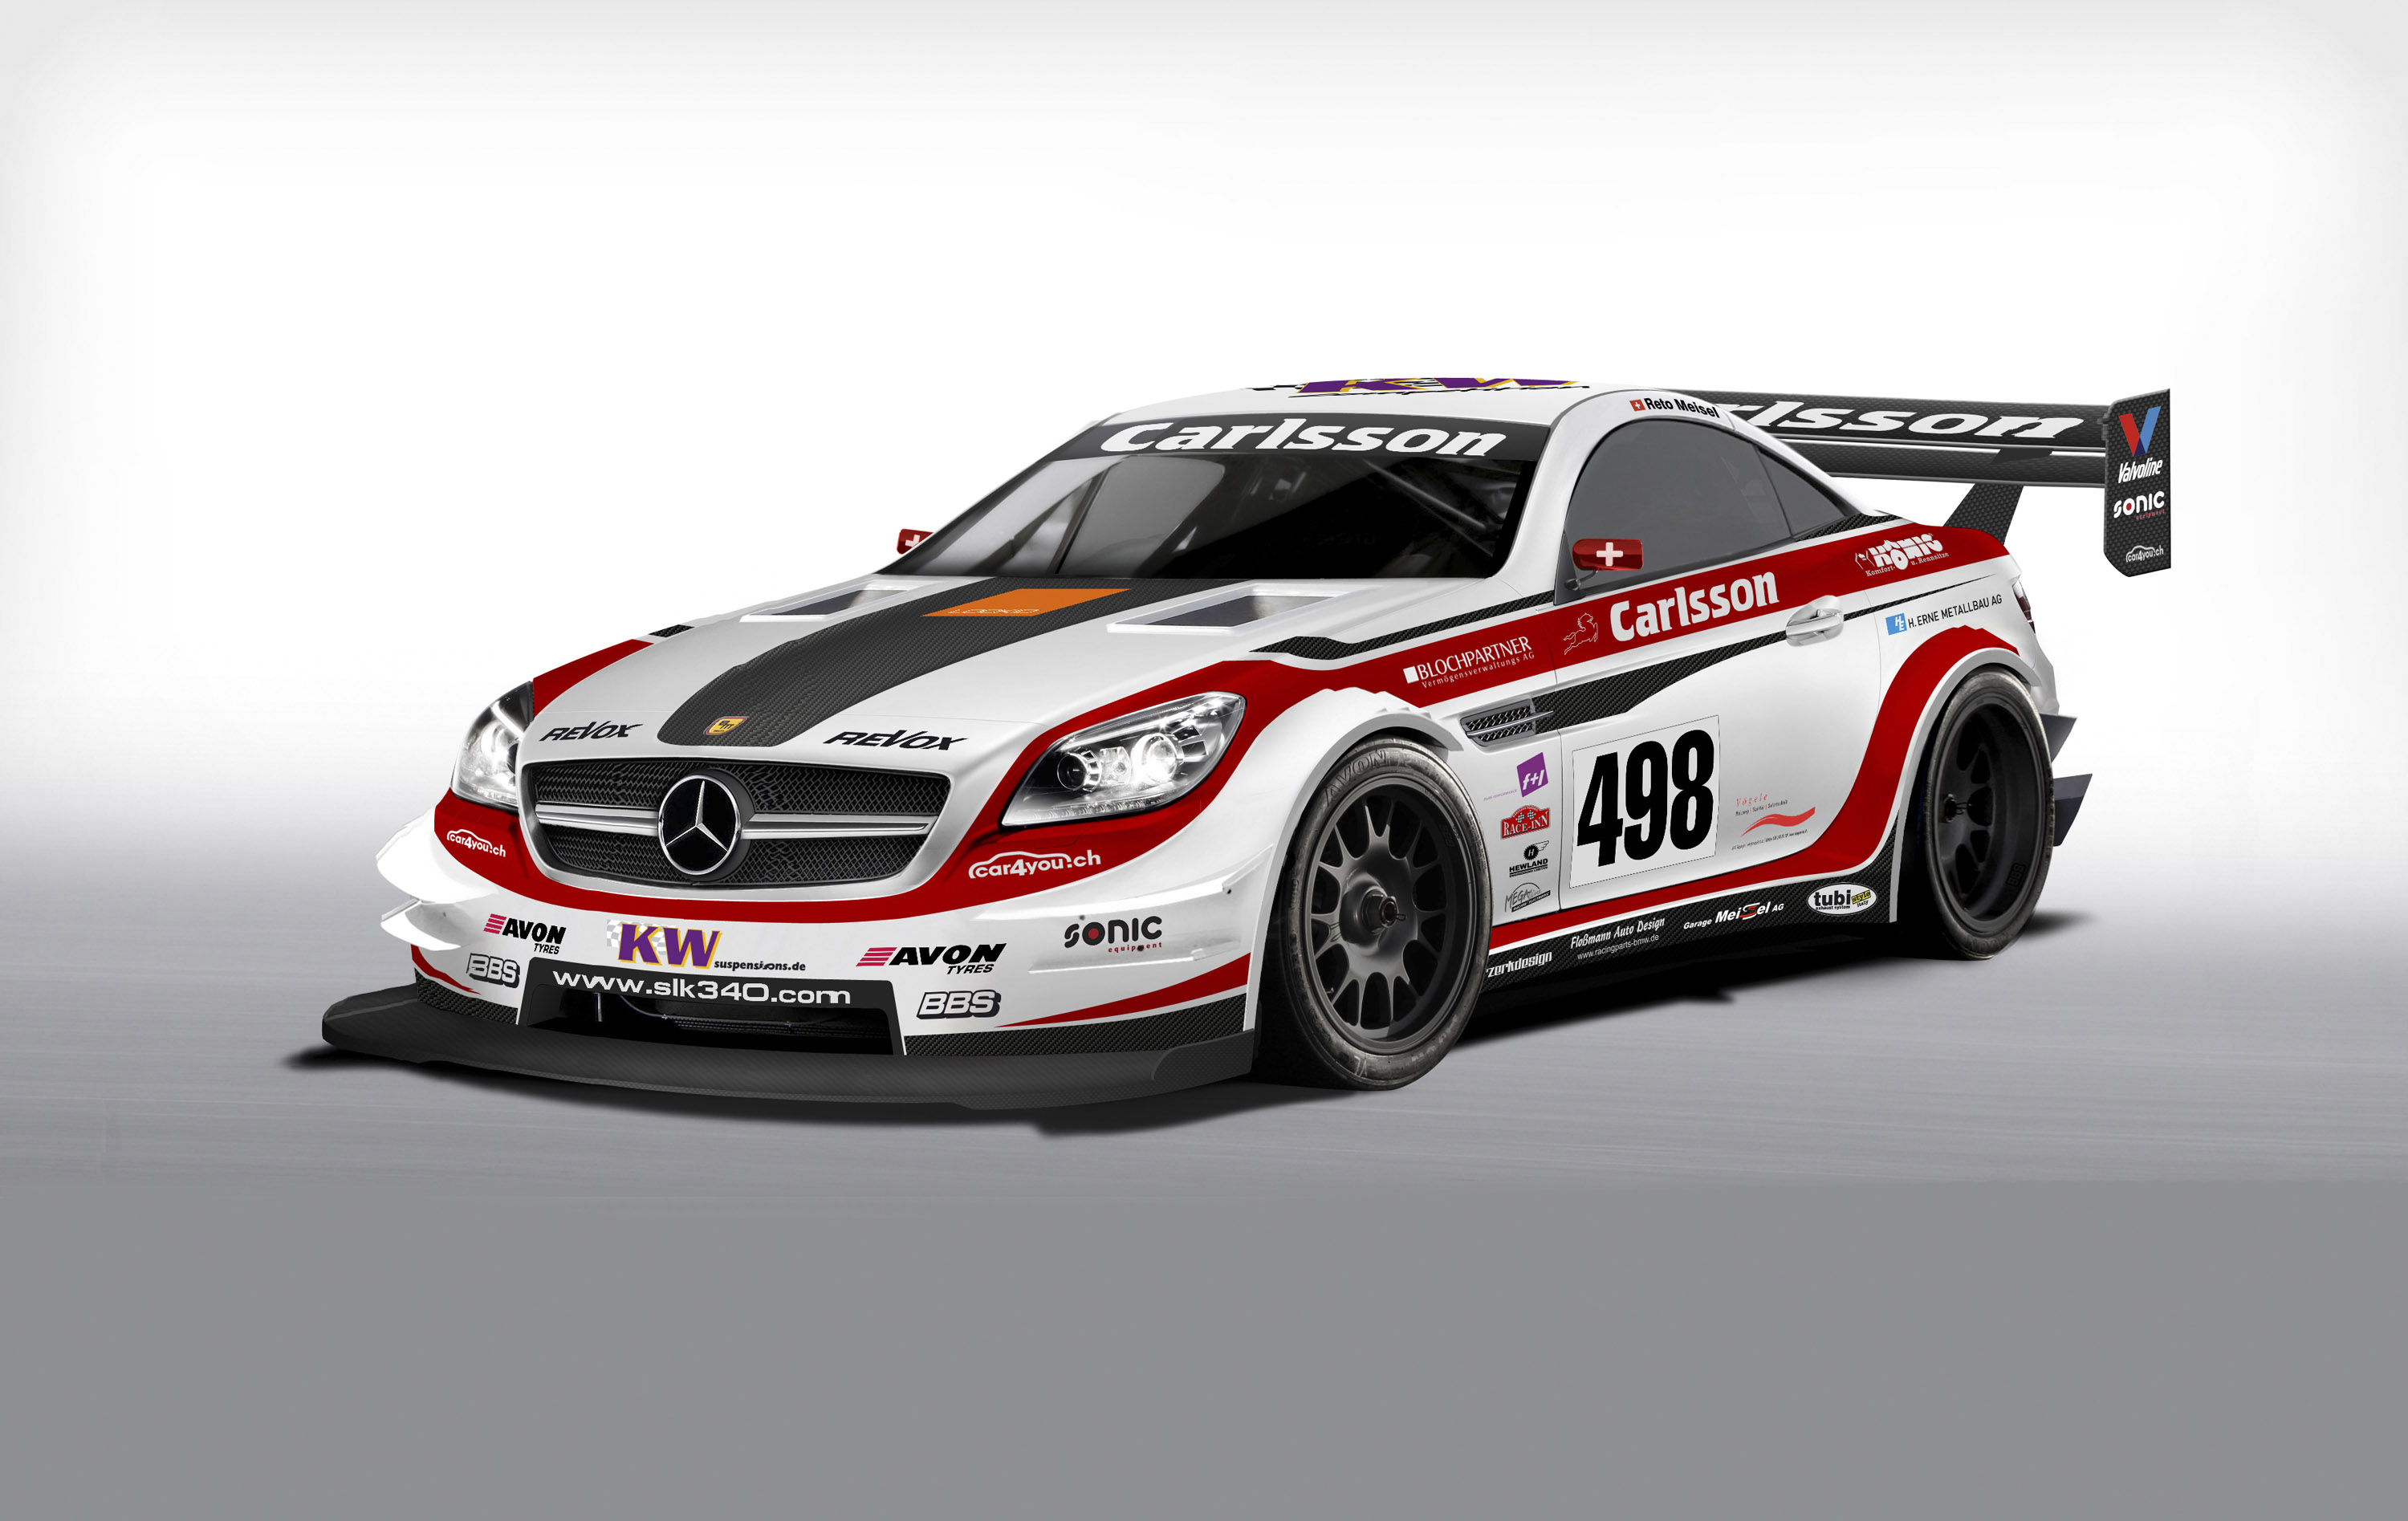 carlsson mercedes benz slk 340 race car revealed in geneva